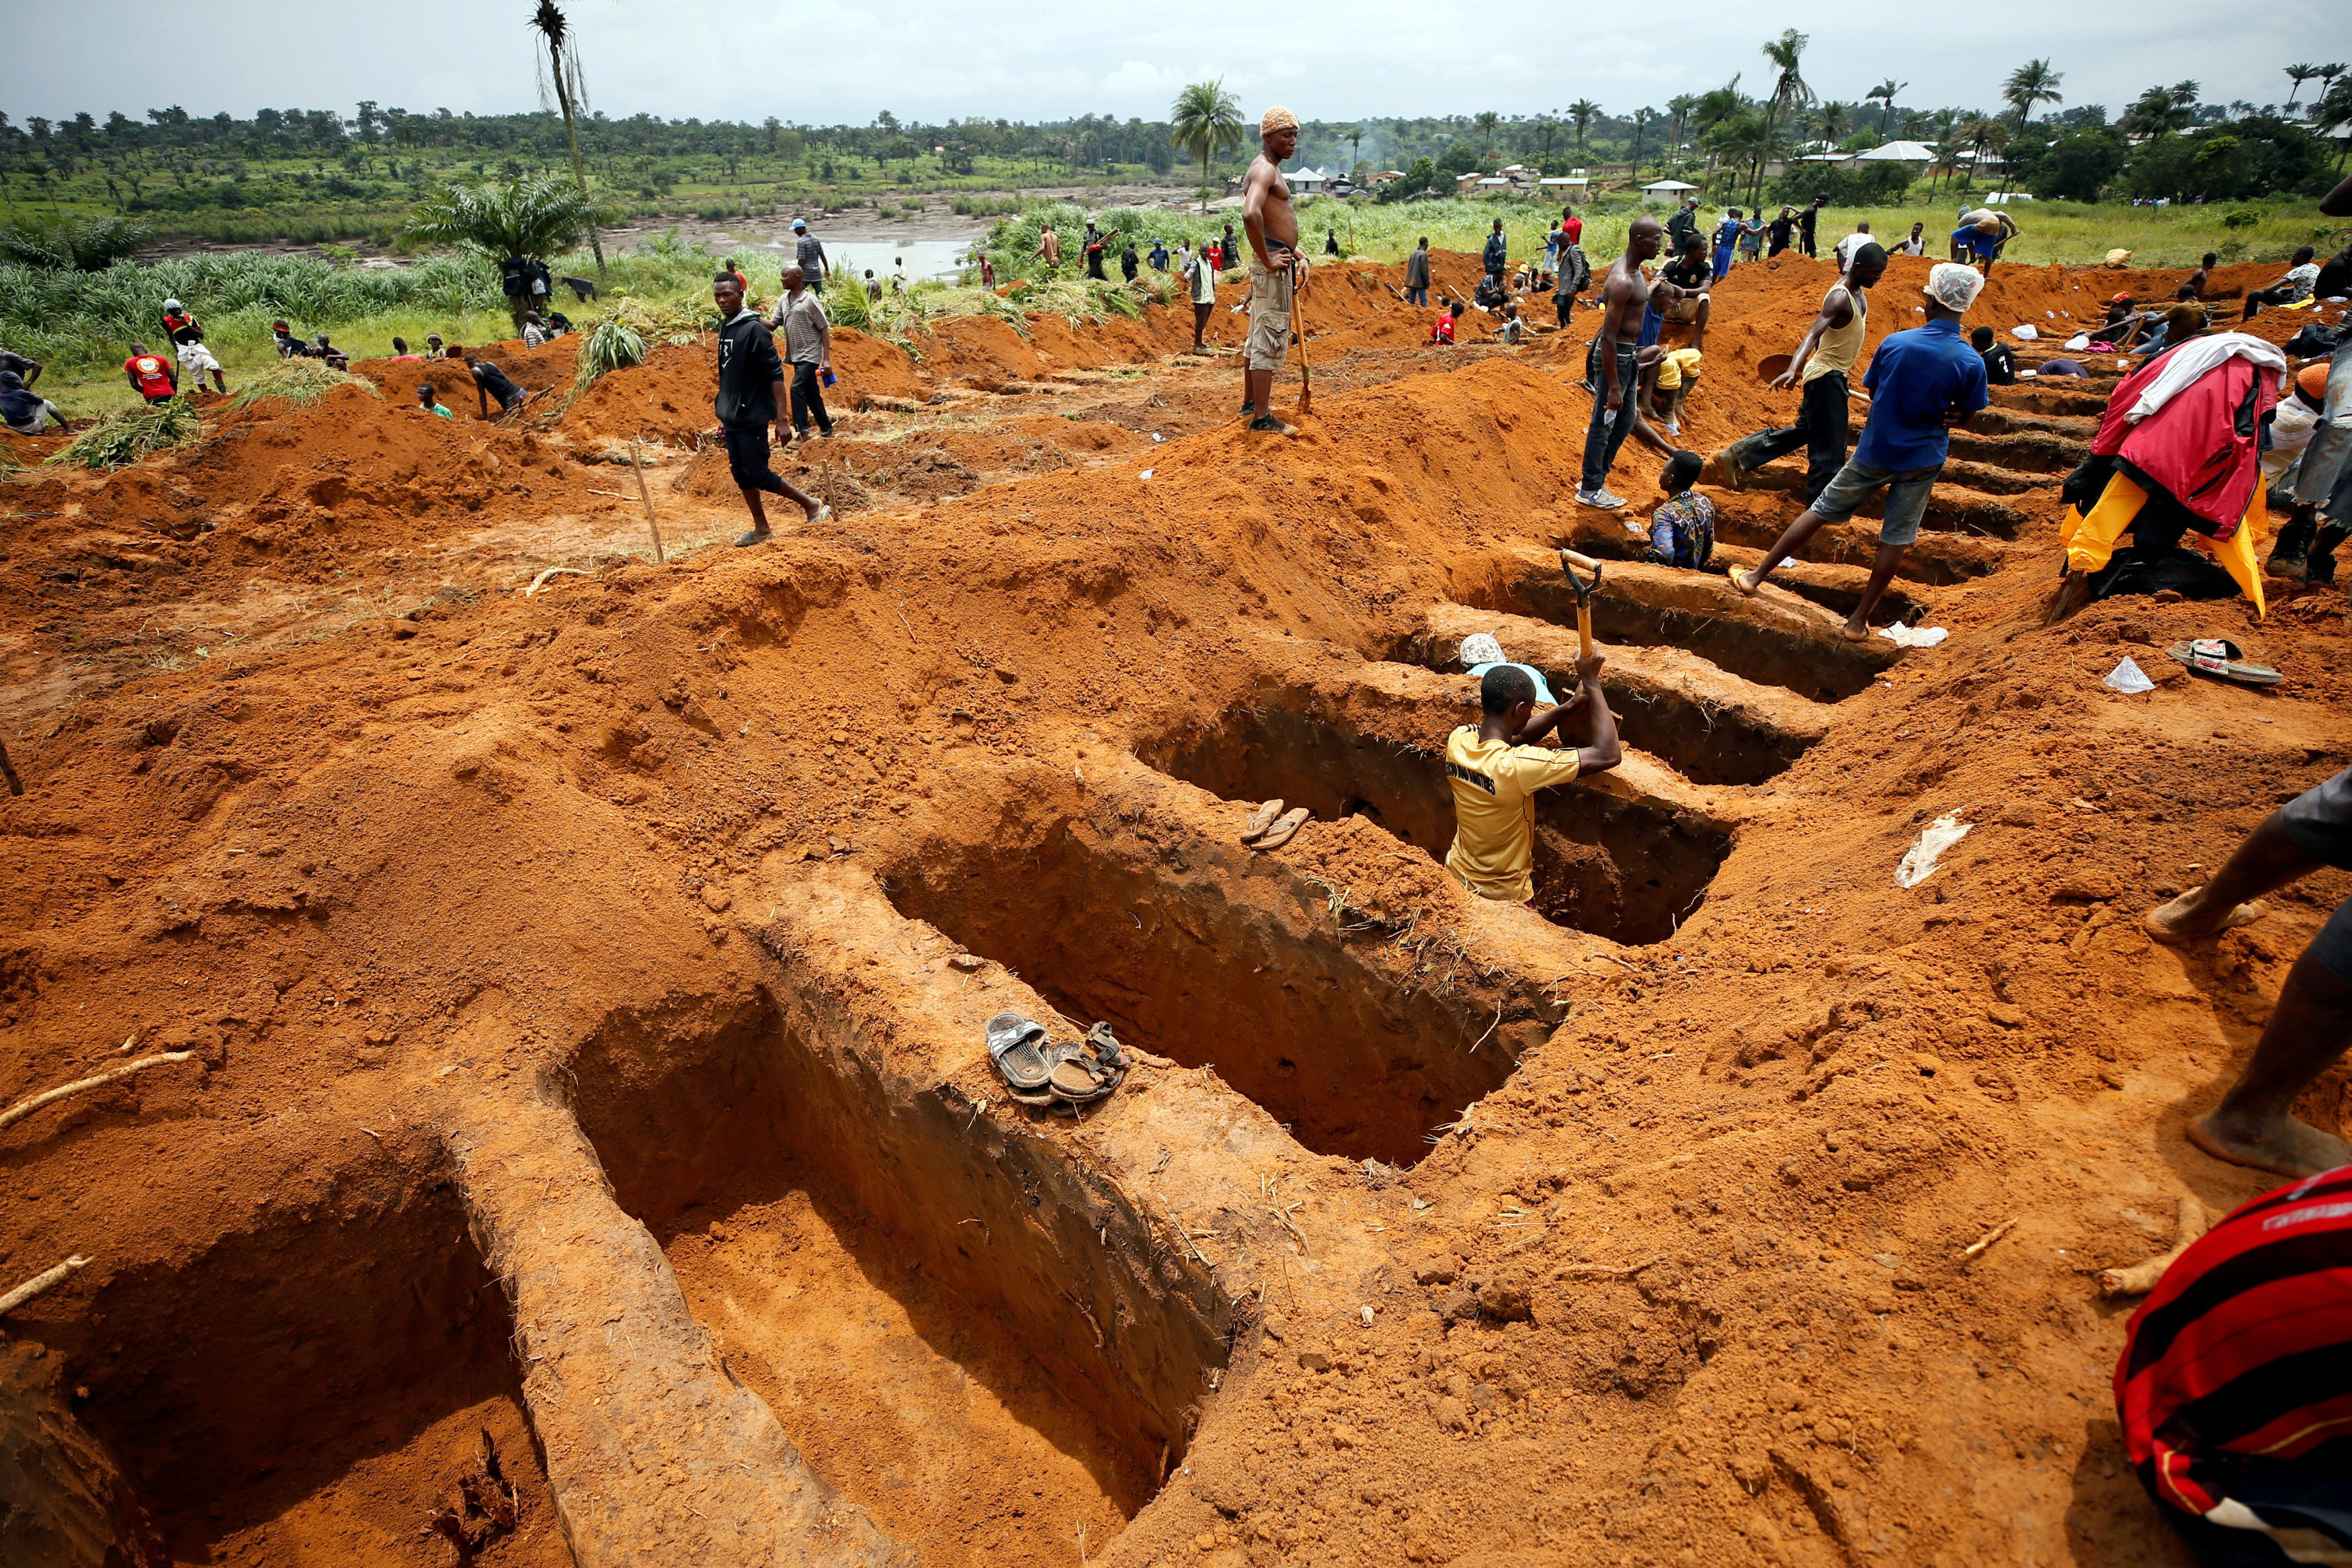 Workers are digging graves at the Paloko cemetery in Waterloo, Sierra Leone August 17, 2017.